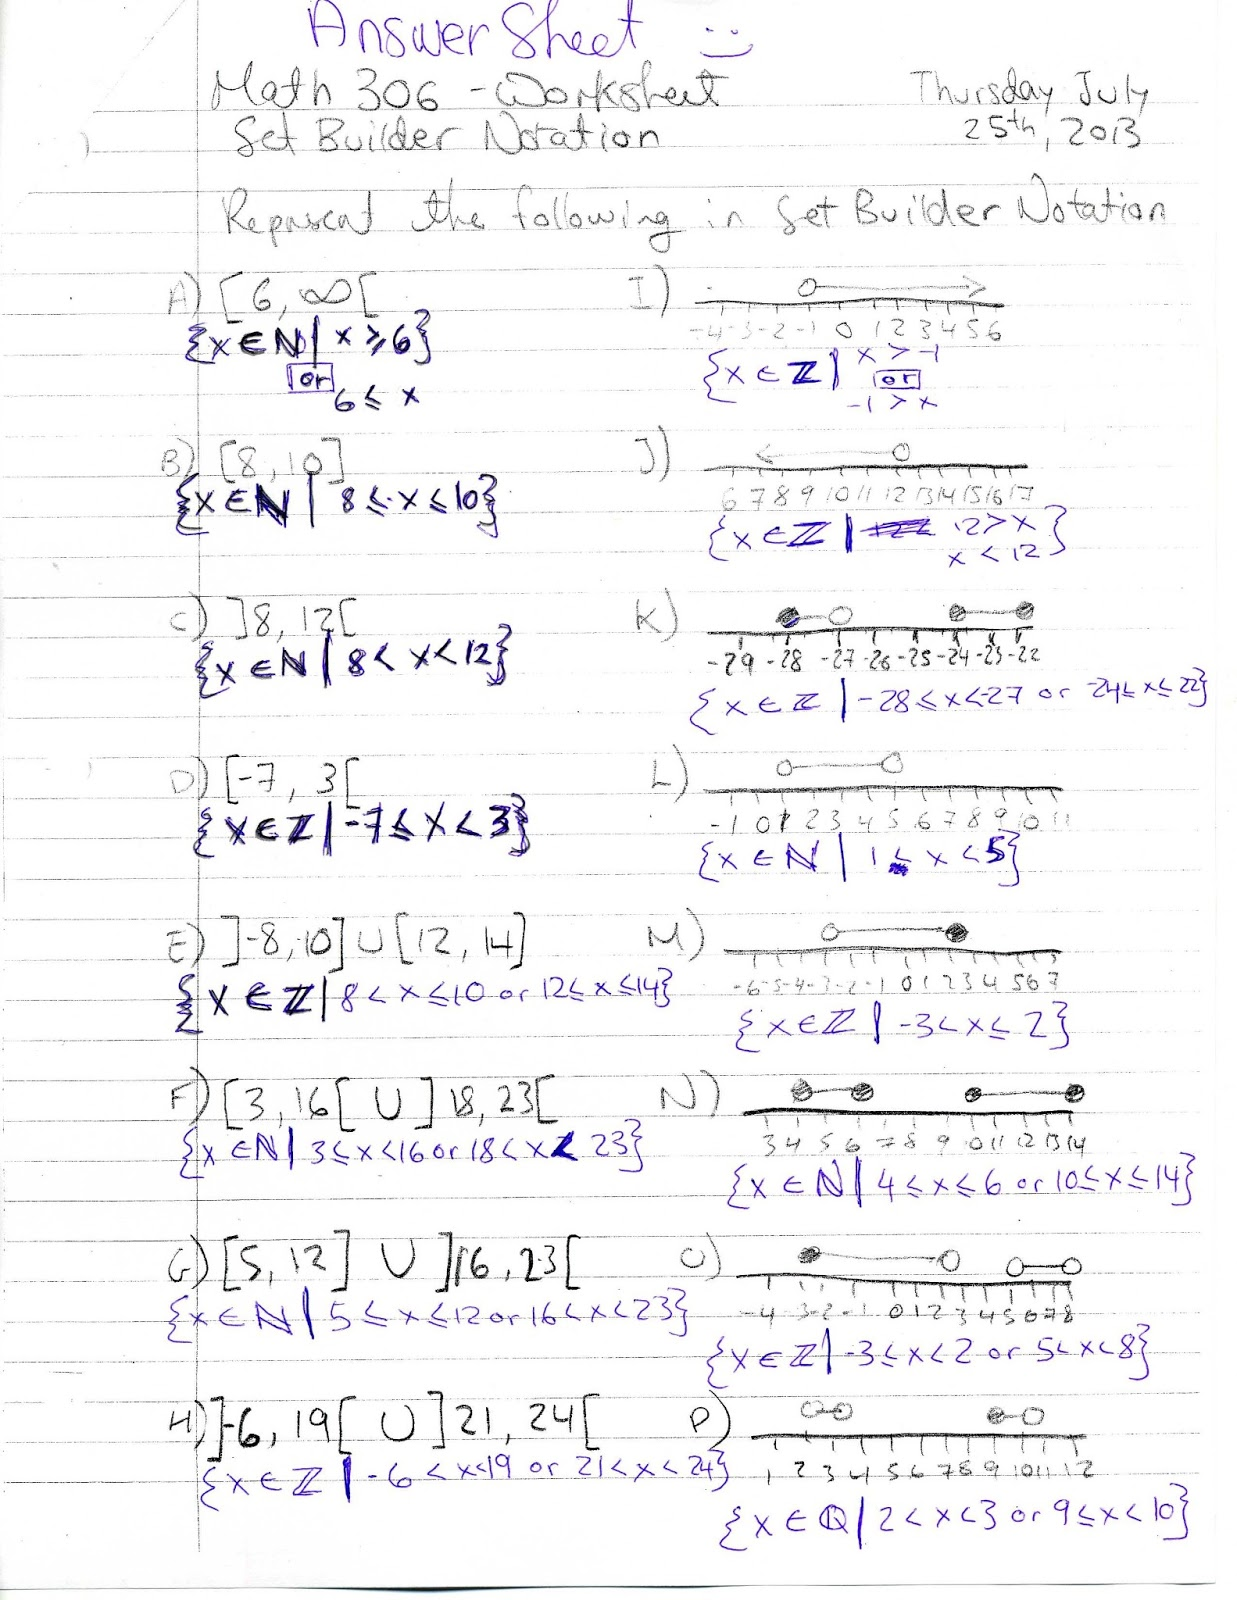 GylesSummerMath2013 Answer Sheet for Set Builder Notation – Set Builder Notation Worksheet